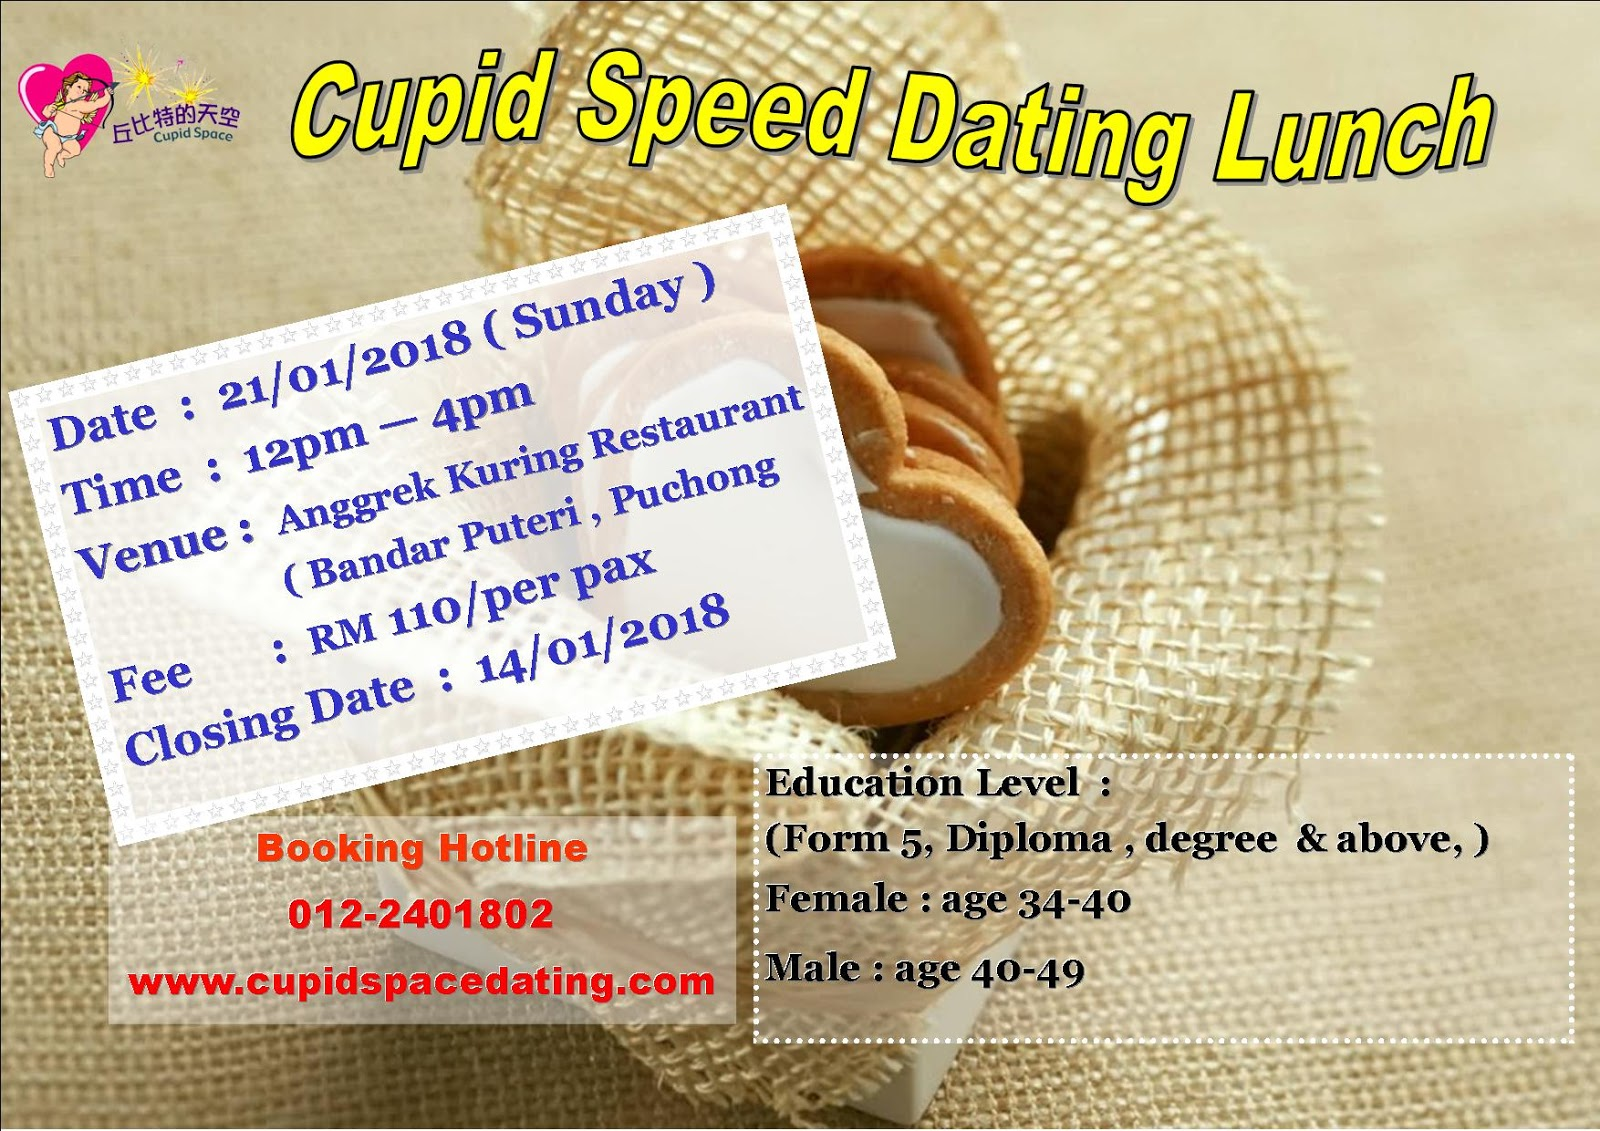 Speed dating lunch